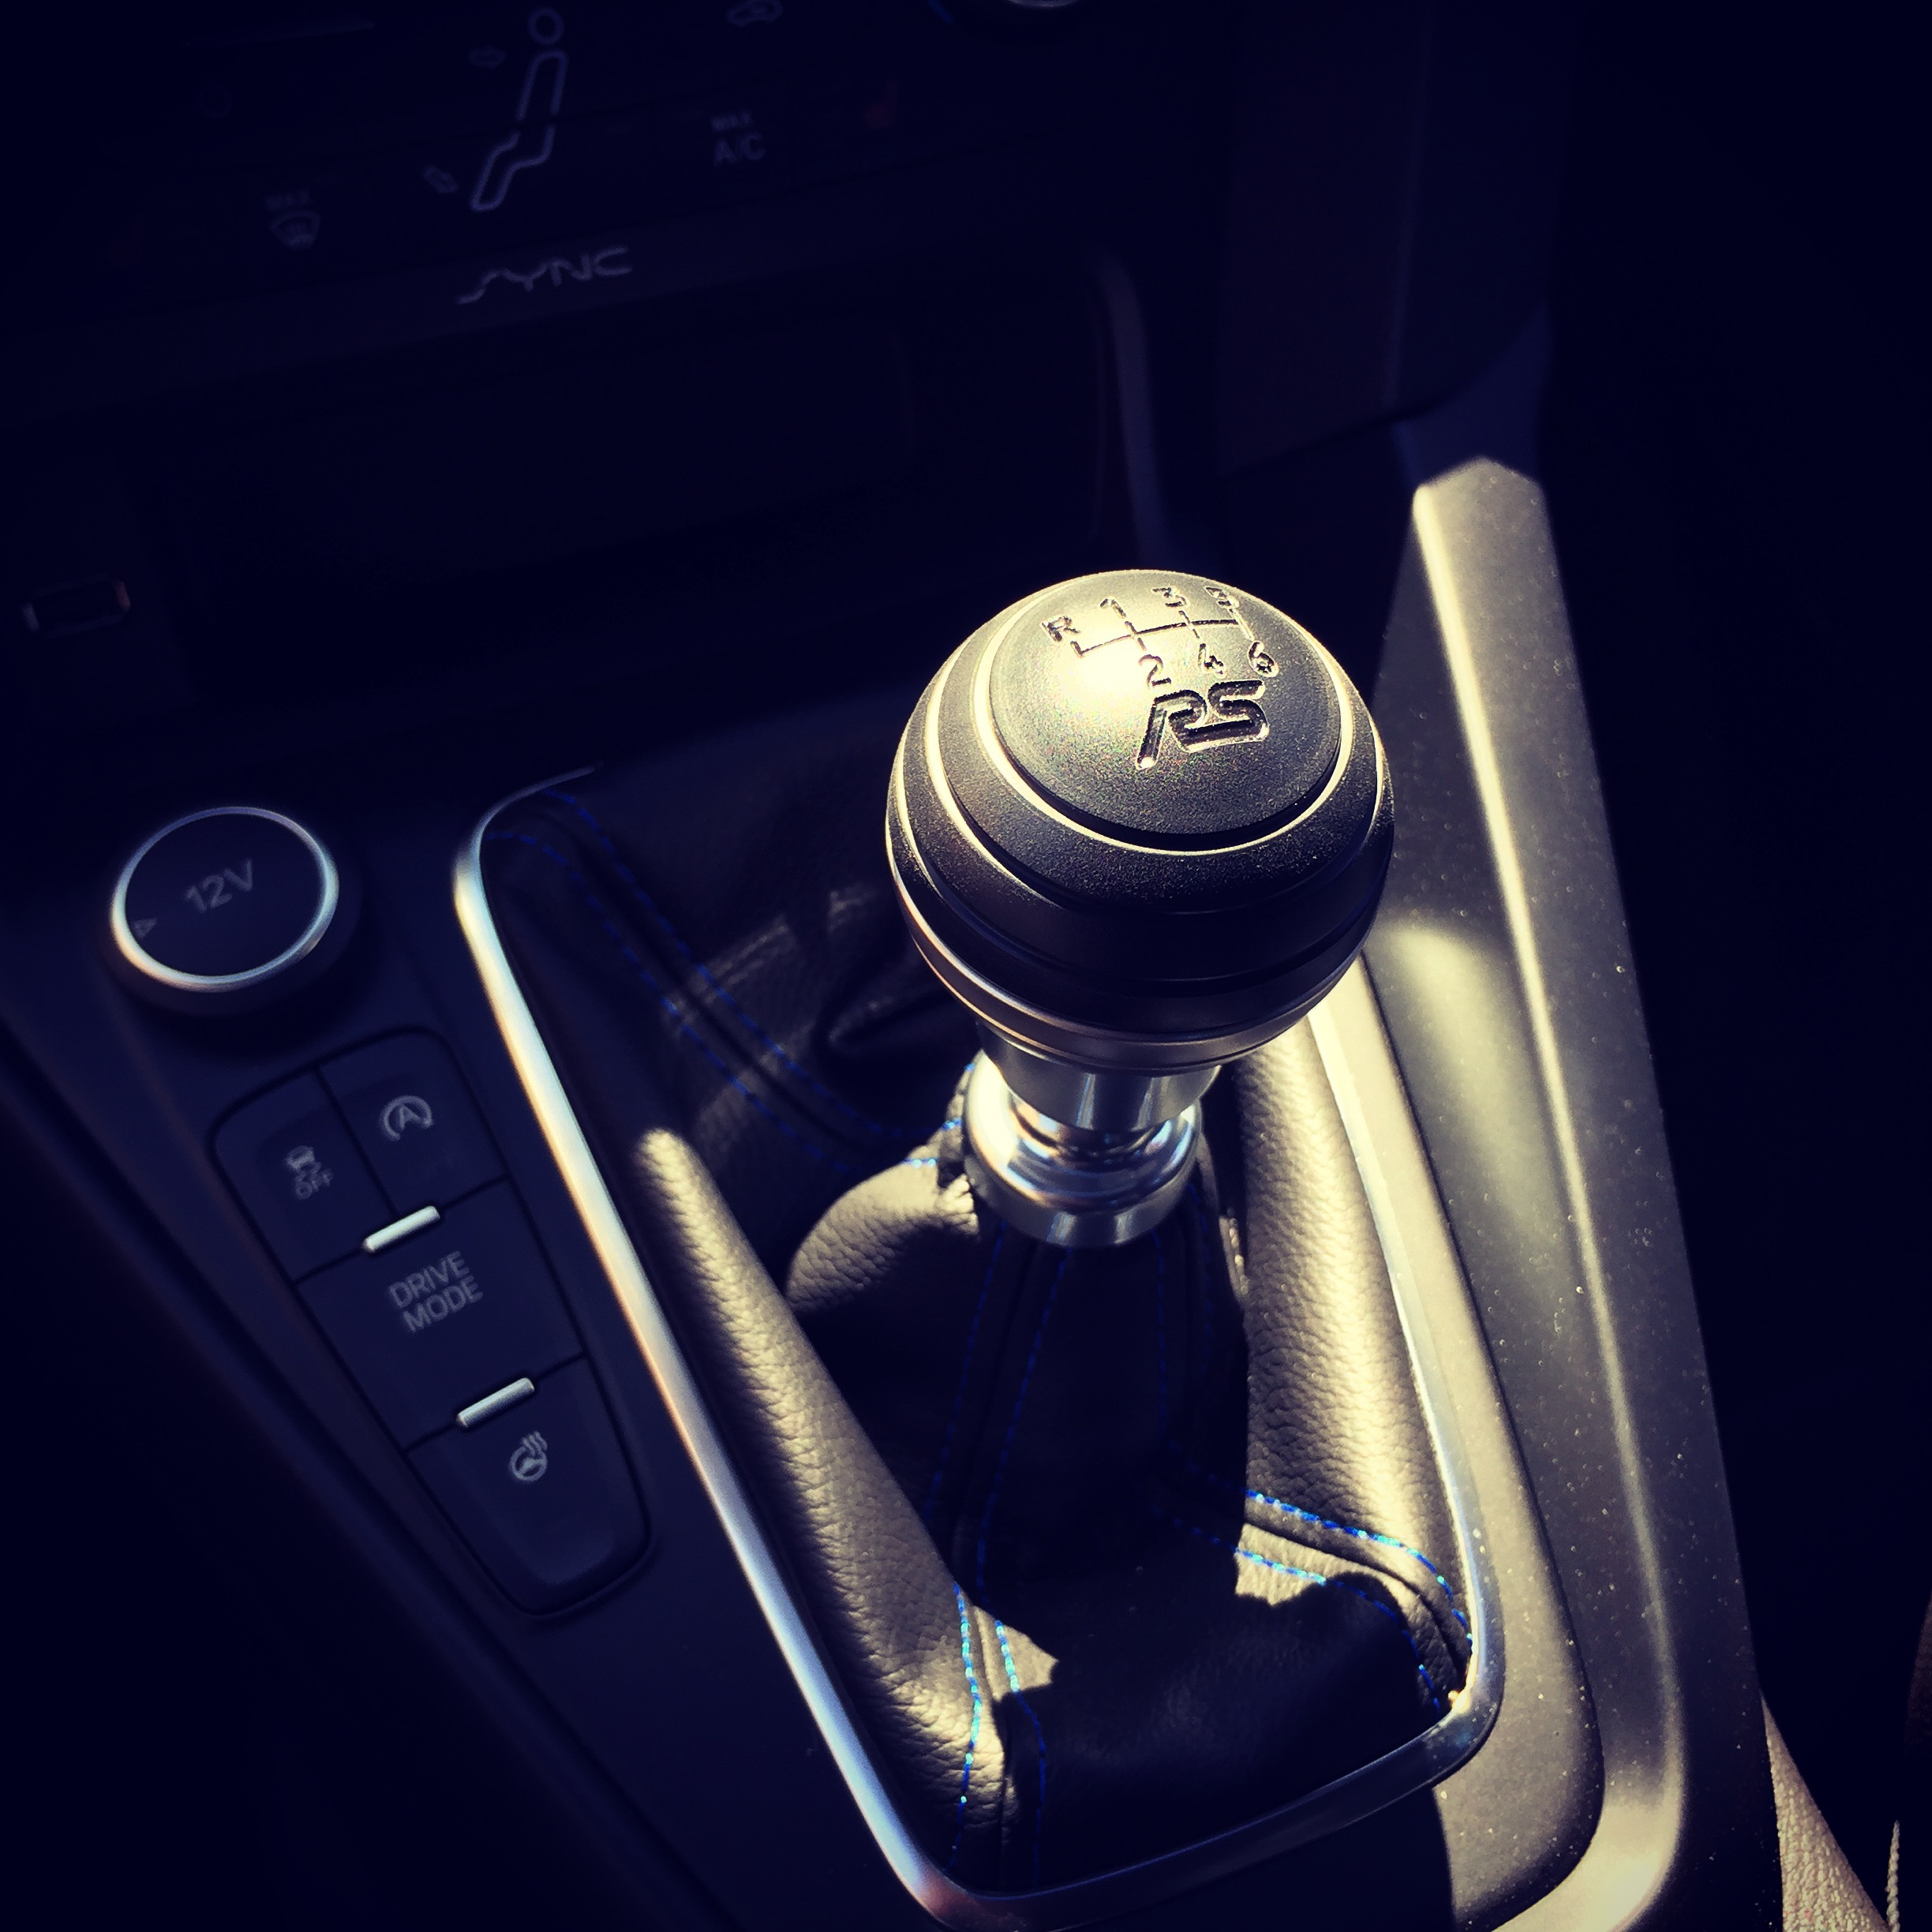 Shift knob thread Page 3